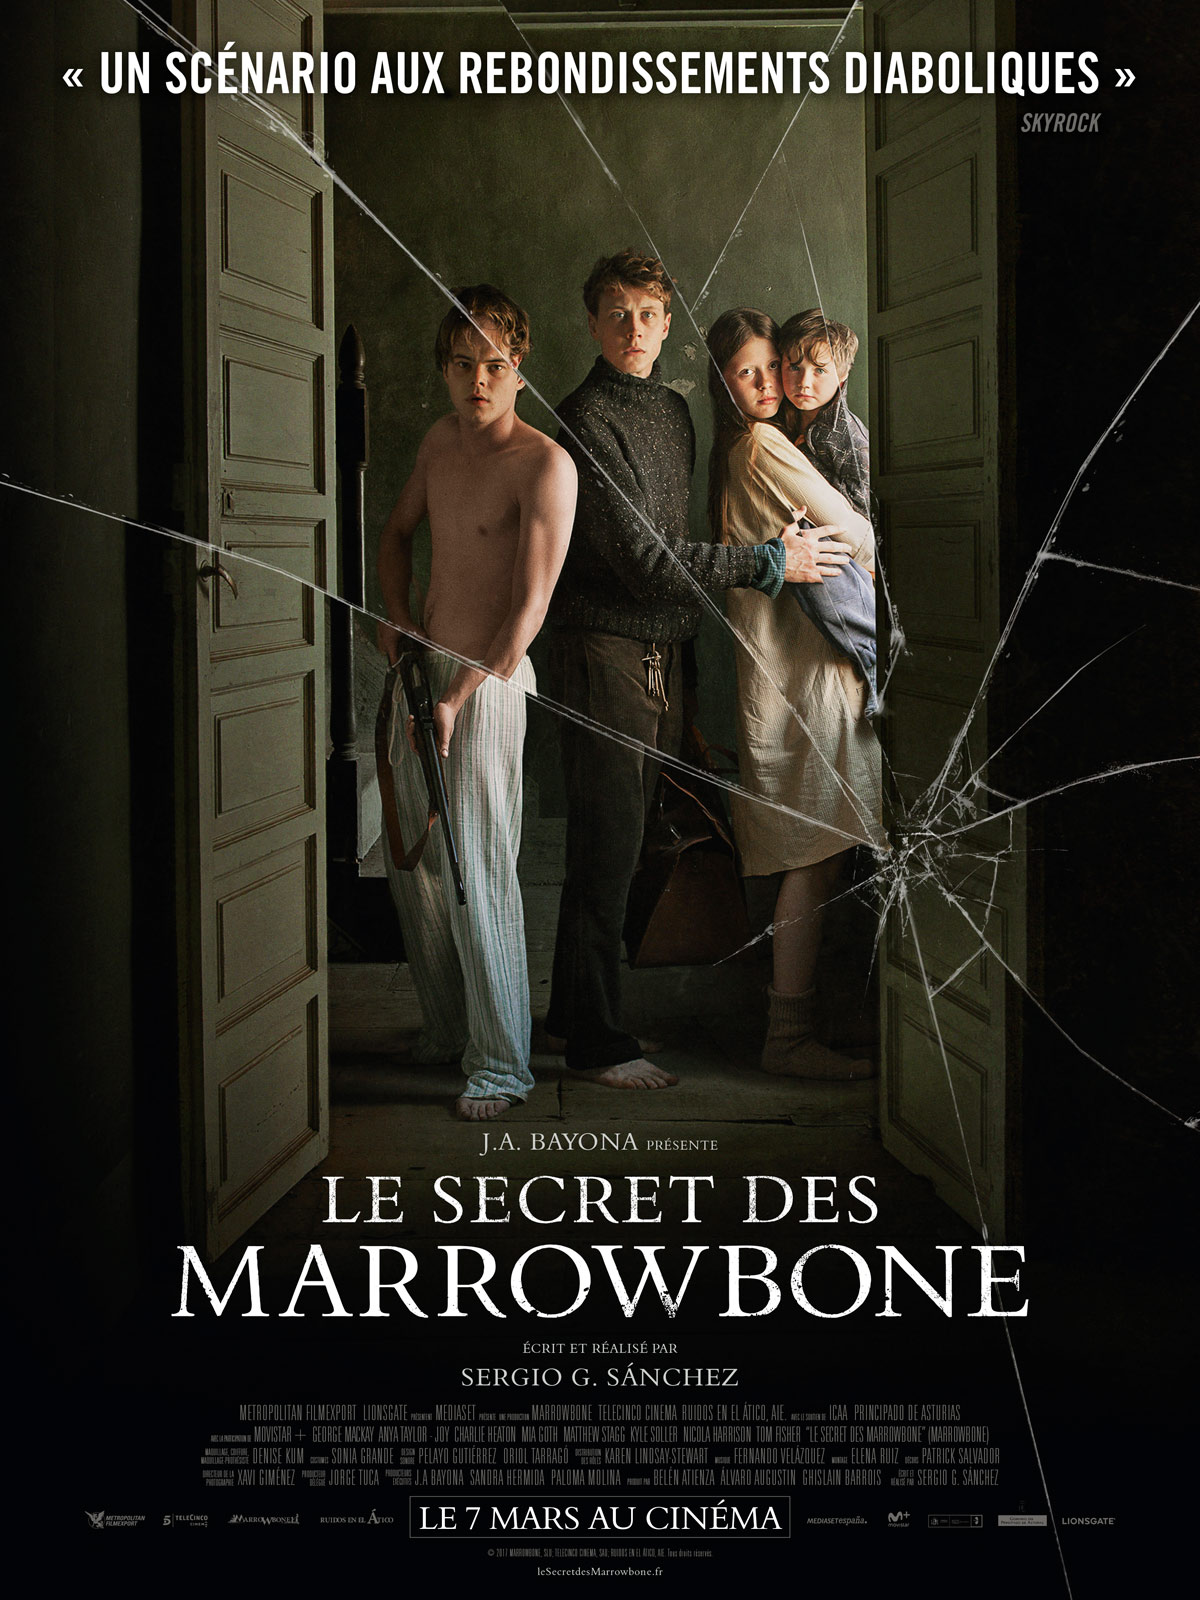 La Chambre Secrete Film Trailer Du Film Le Secret Des Marrowbone Le Secret Des